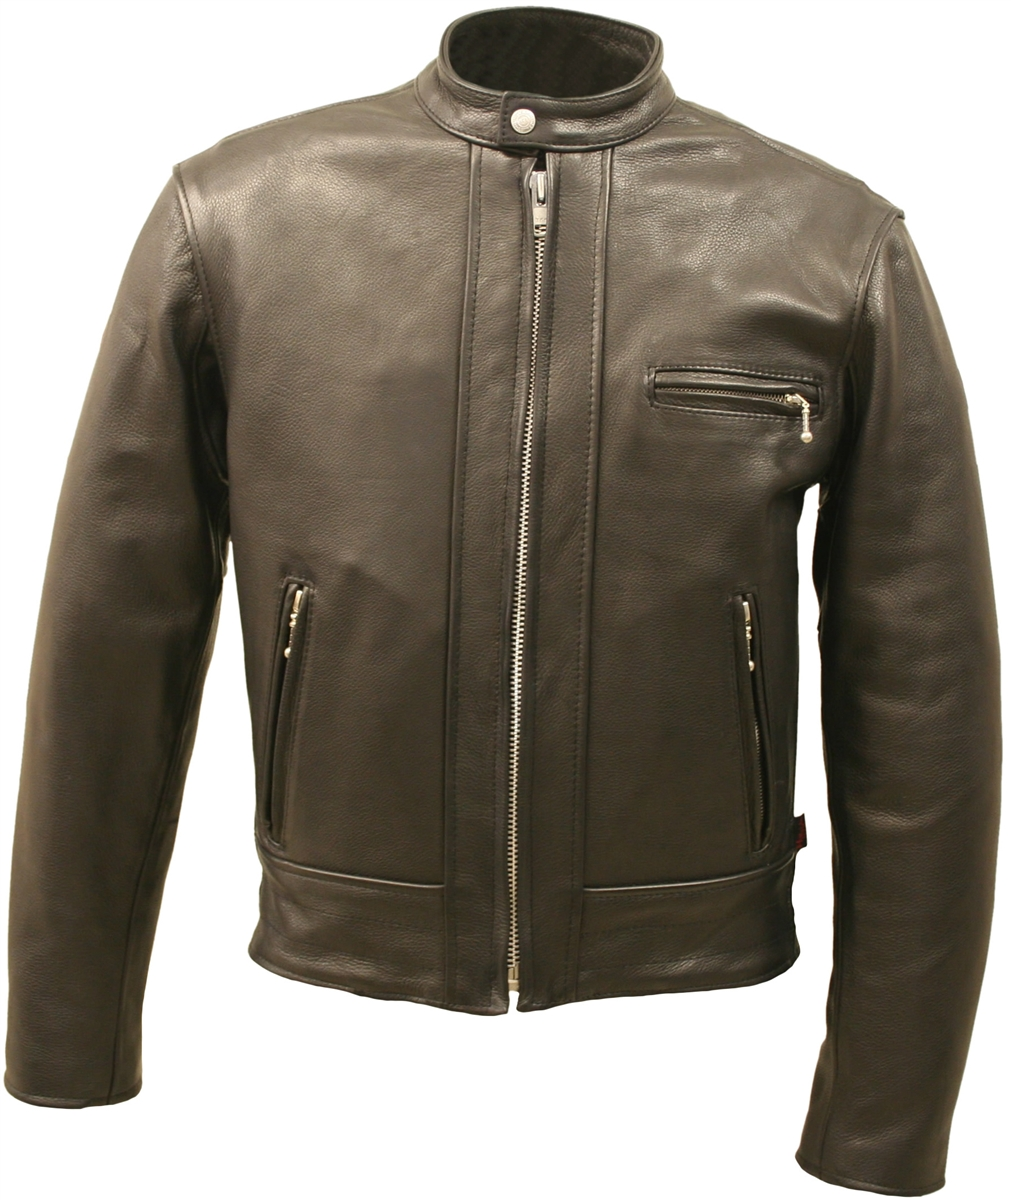 The Fitted Racer Jacket combines distinct design and timeless style with Hillside USA Leather's commitment to quality craftsmanship.This jacket is built from 4-4 1/2 oz. Soft premium cowhide naked leather. Just like most of Hillside USA's collection featu